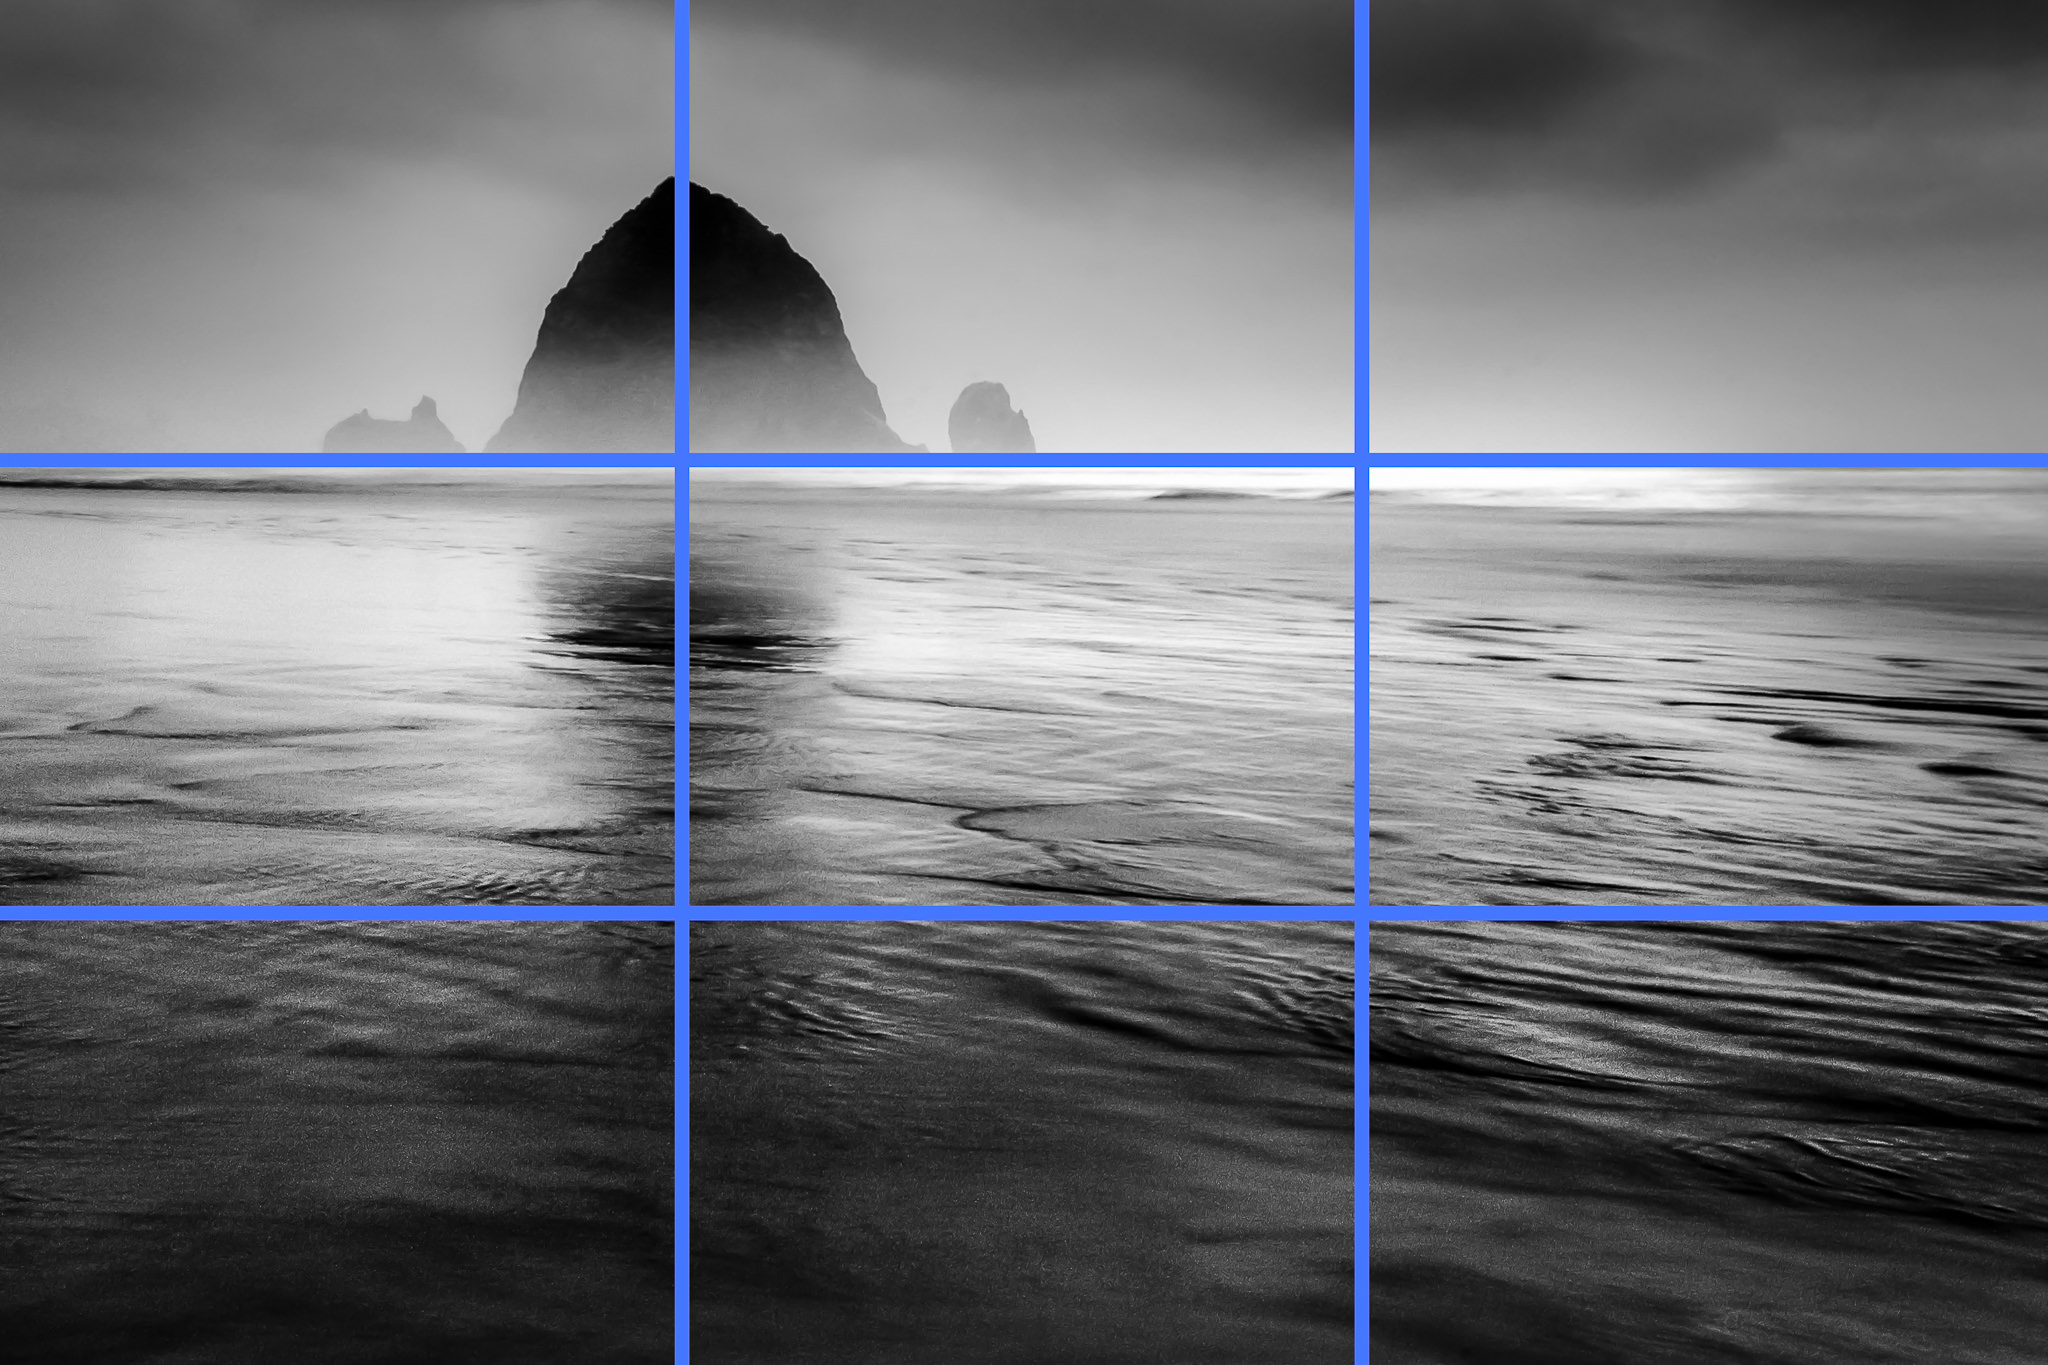 What Is The Rule Of Thirds And How To Use It To Improve Your Photos